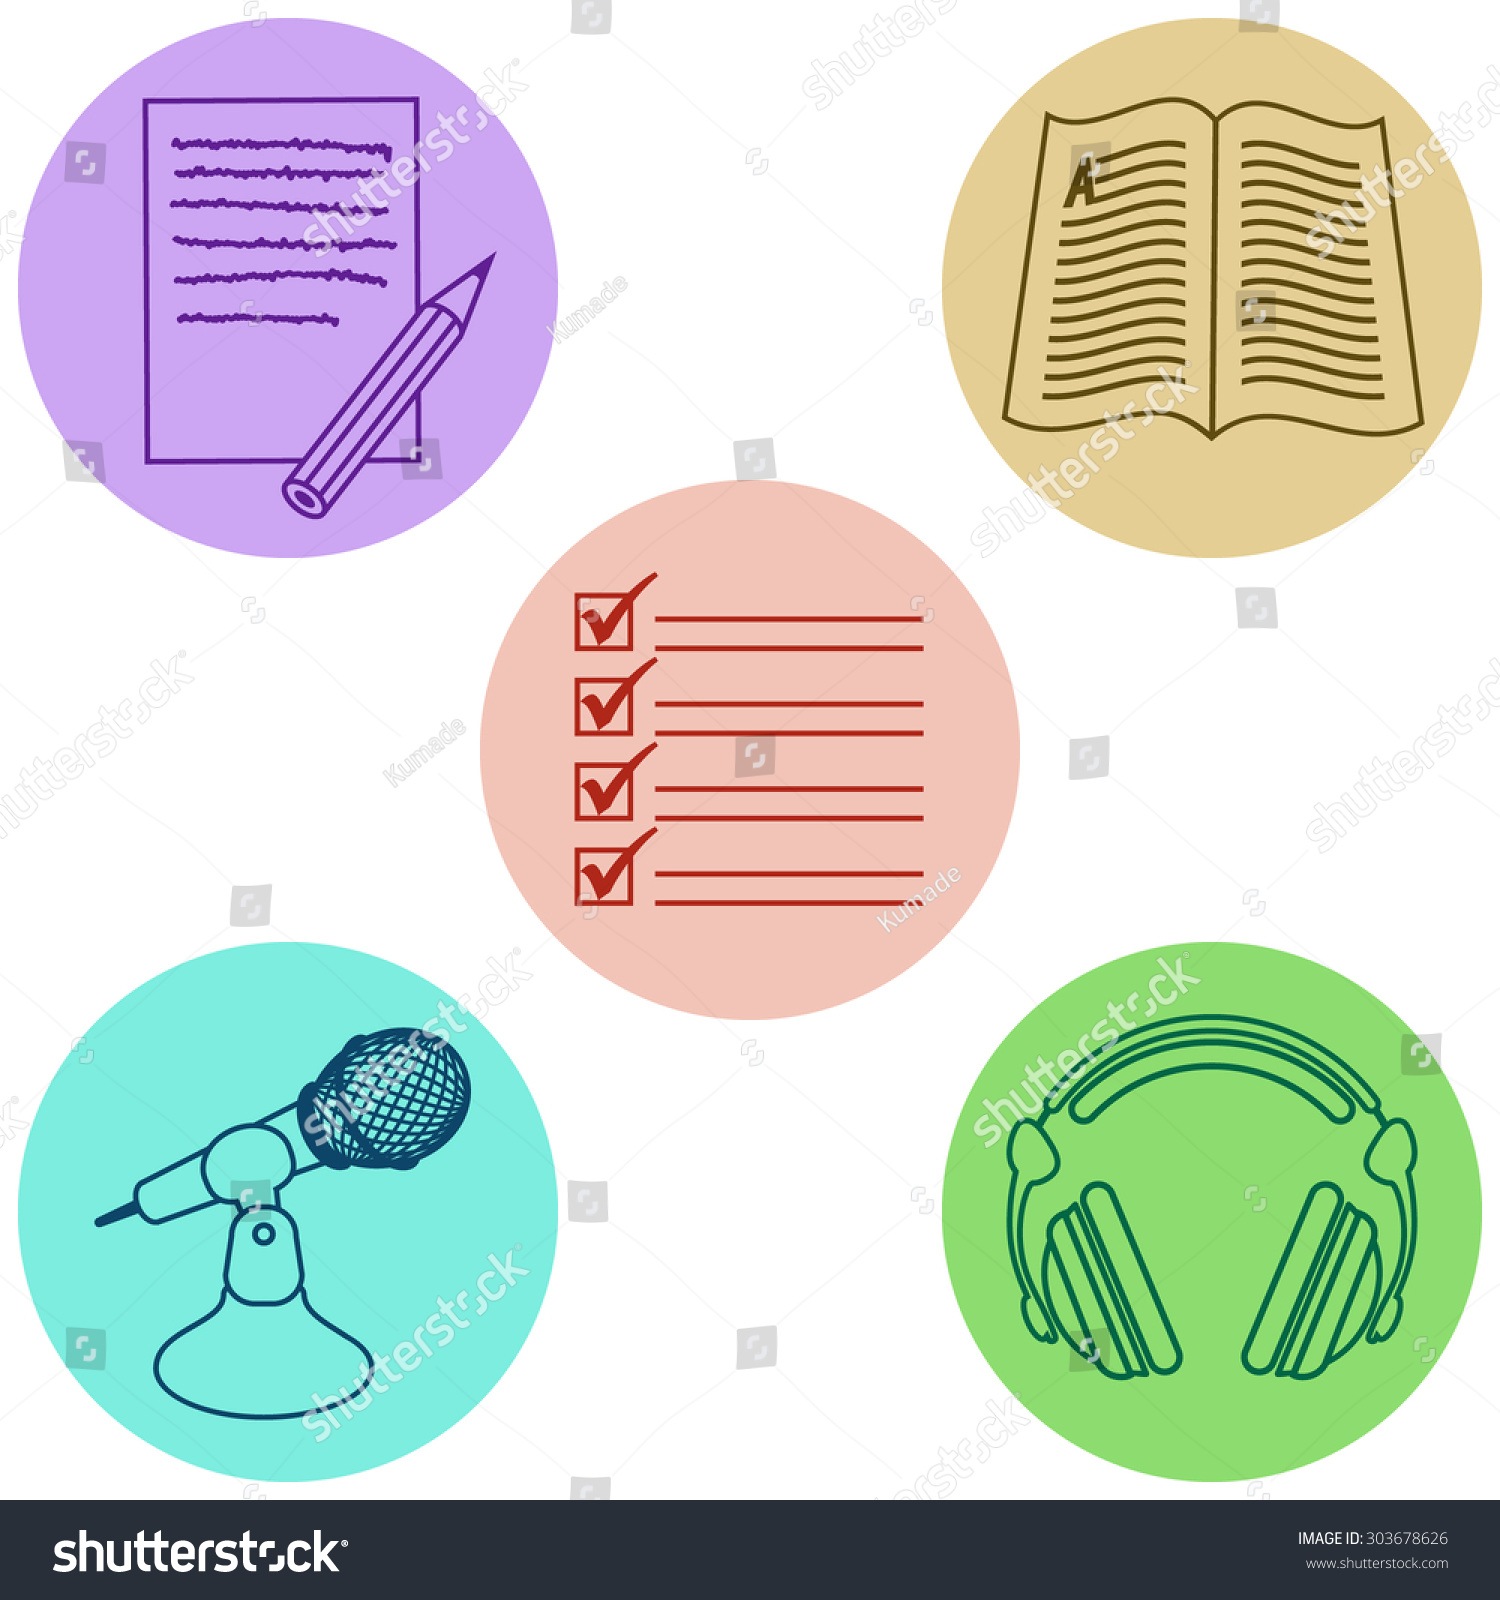 speaking and listening essay How to improve your communication skills by reflective listening and apply those skills both in life speaking guide writing guide essay writing guide academic.